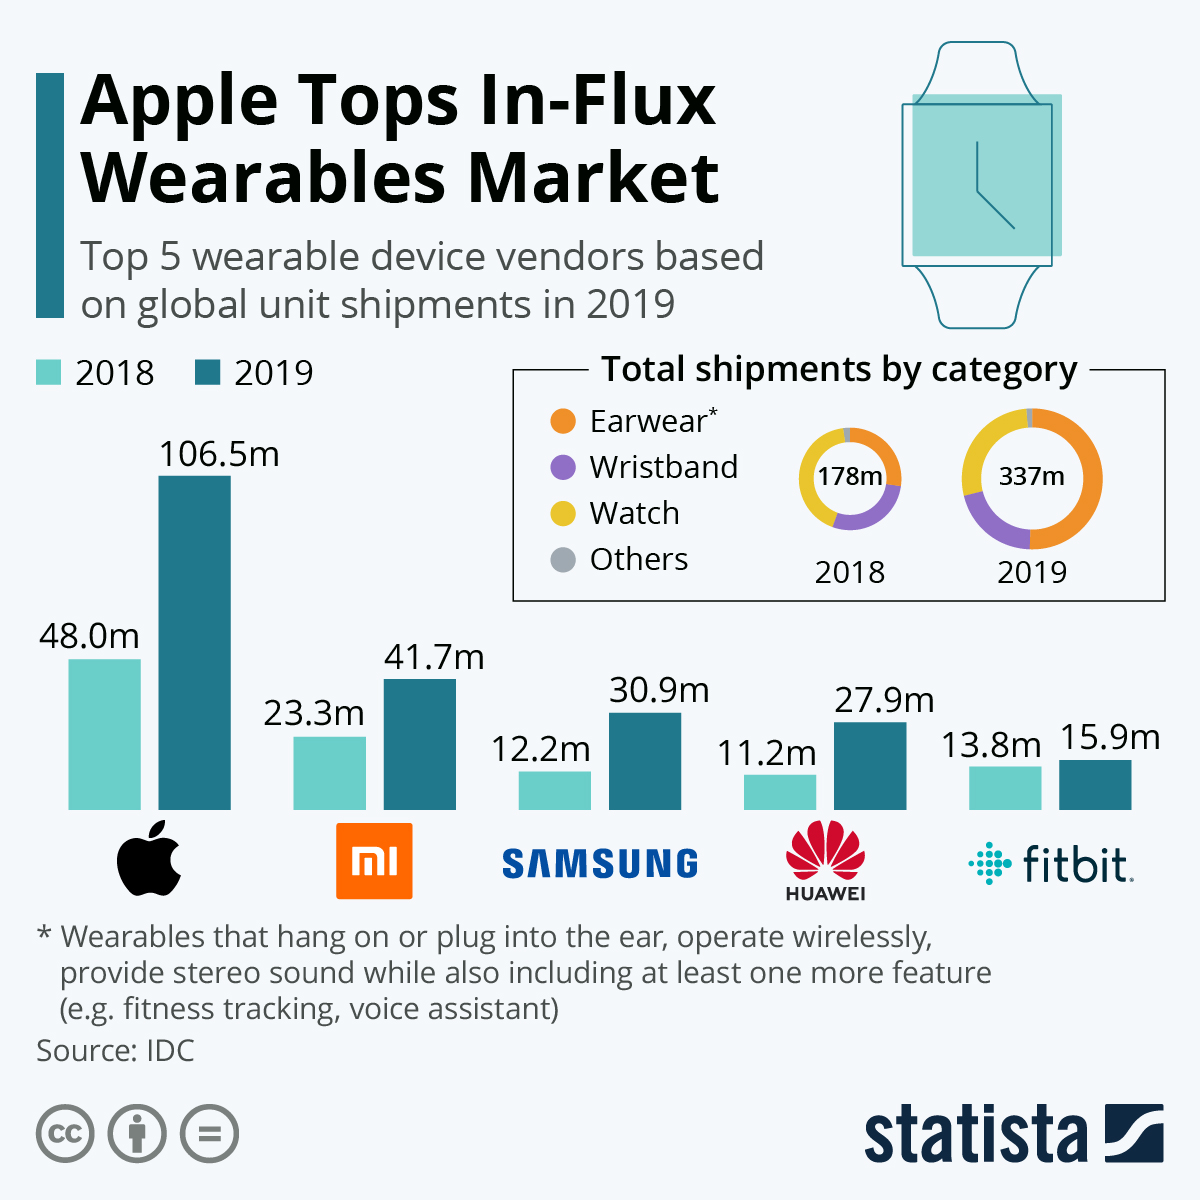 Apple comes on top in the wearable tech market